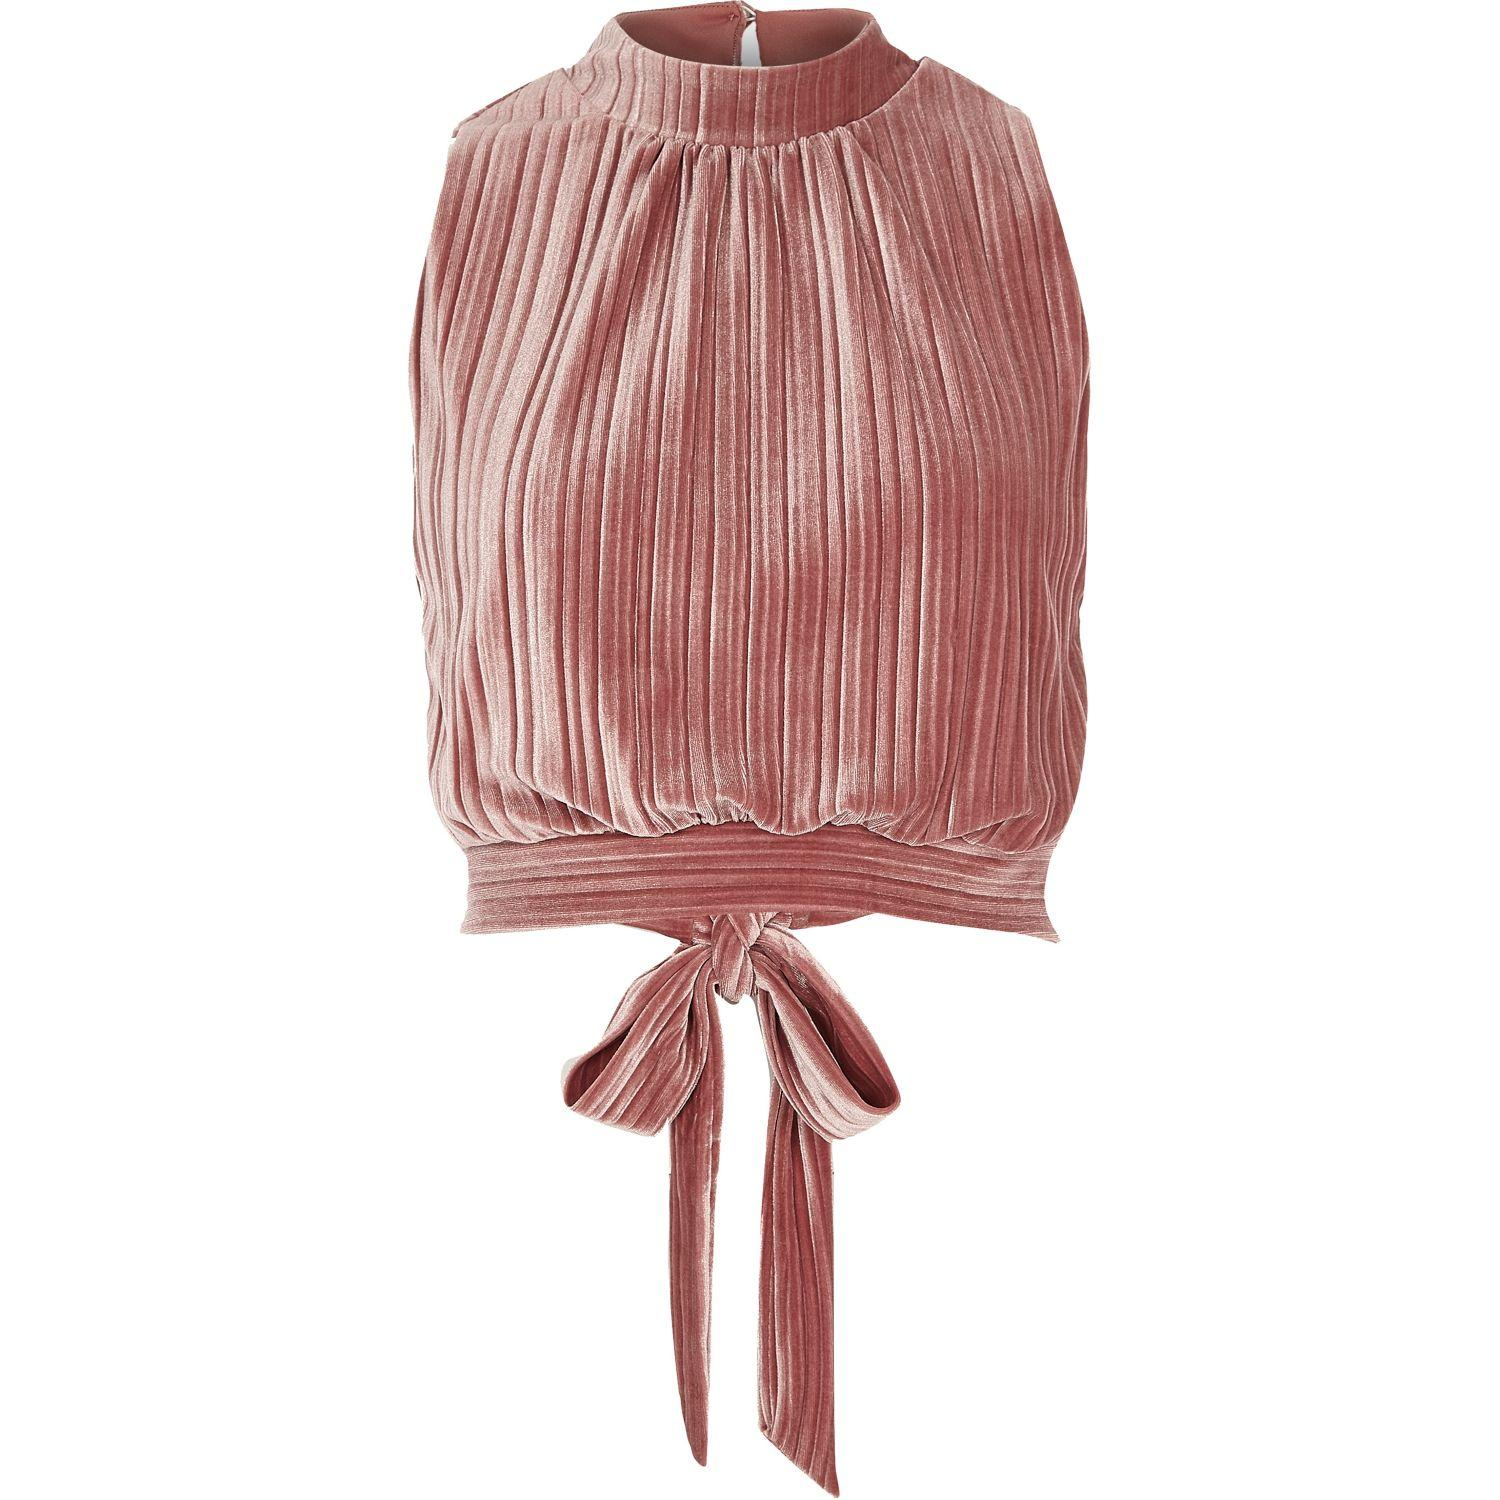 ca0b232f165481 River Island Pink Pleated Velvet Crop Top in Pink - Lyst